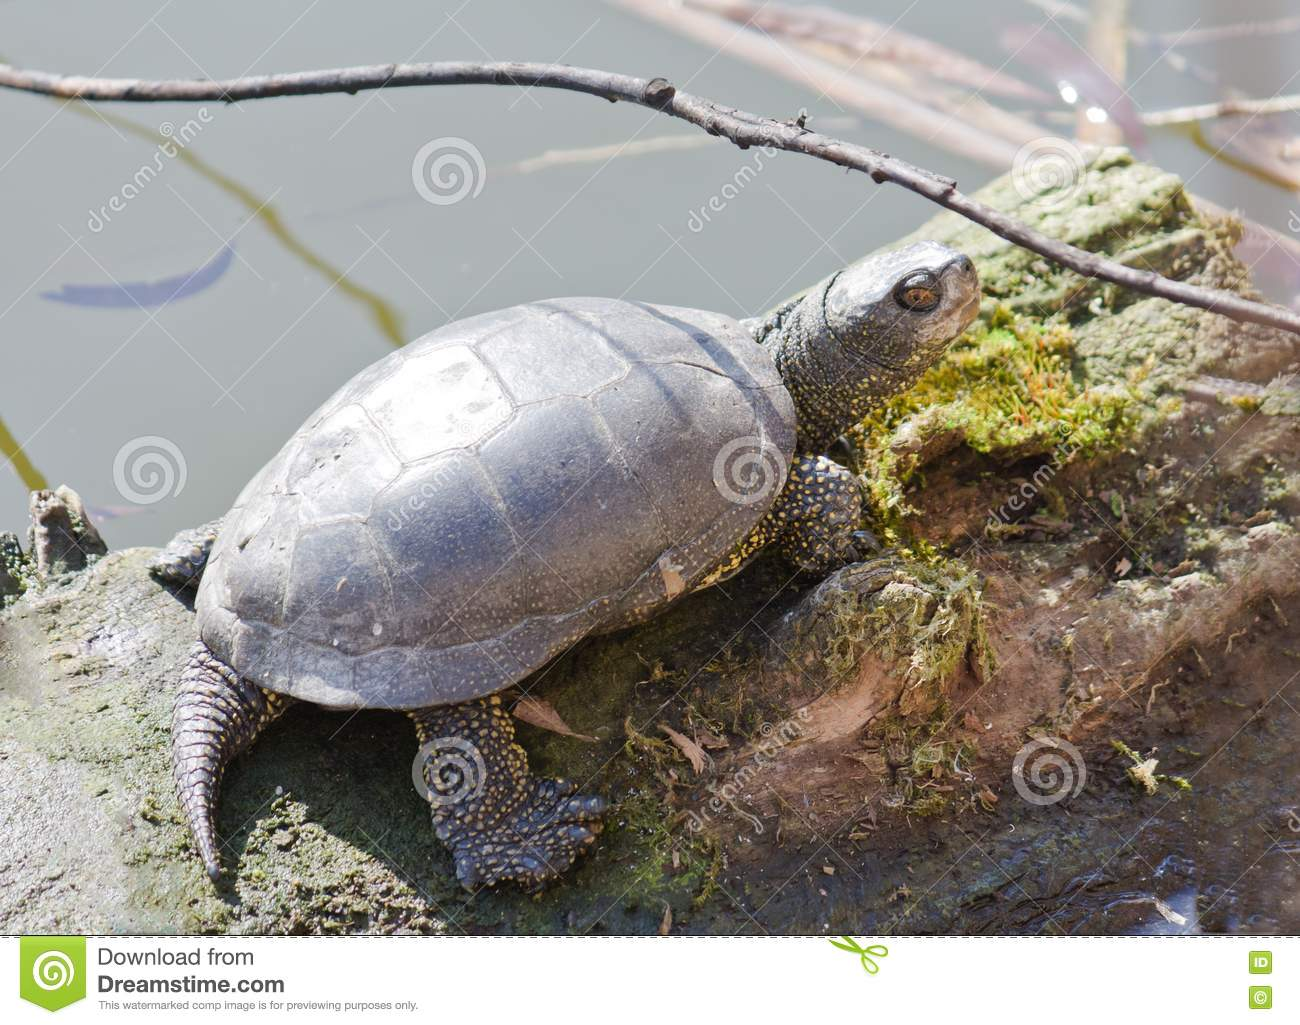 Basking Area For Aquatic Turtles : Turtle Basking In Sunlight On A Lake Shore Stock Photography - Image ...